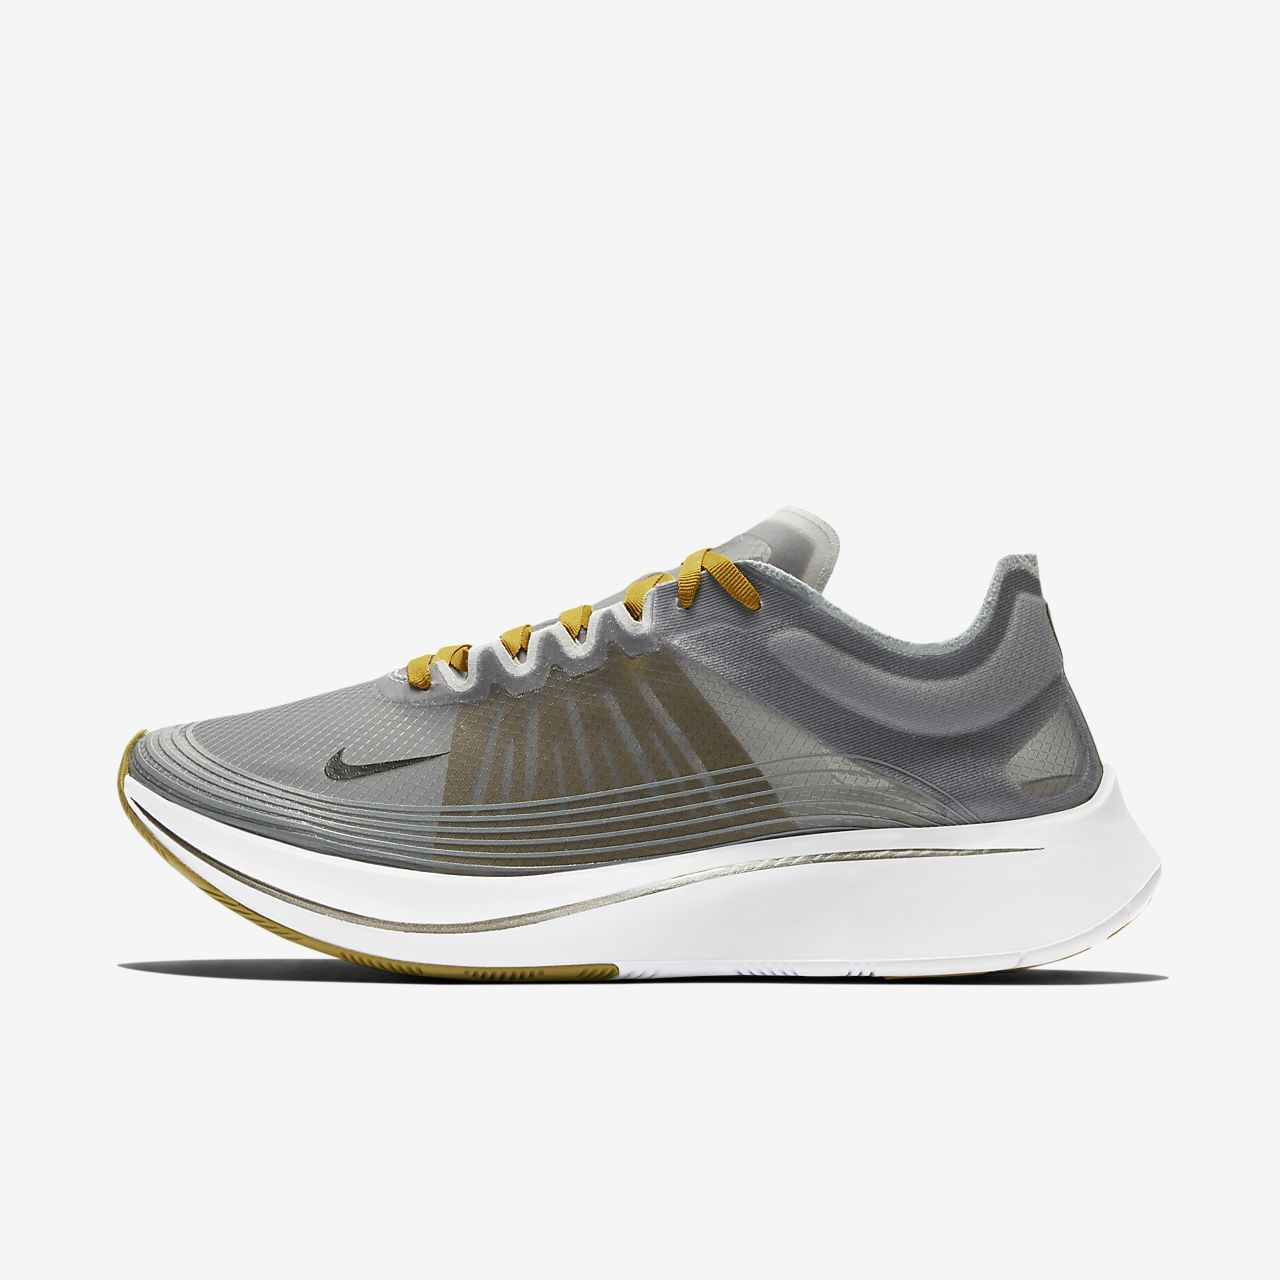 bf7a1ce28e67 Nike Zoom Fly SP Running Shoe. Nike.com